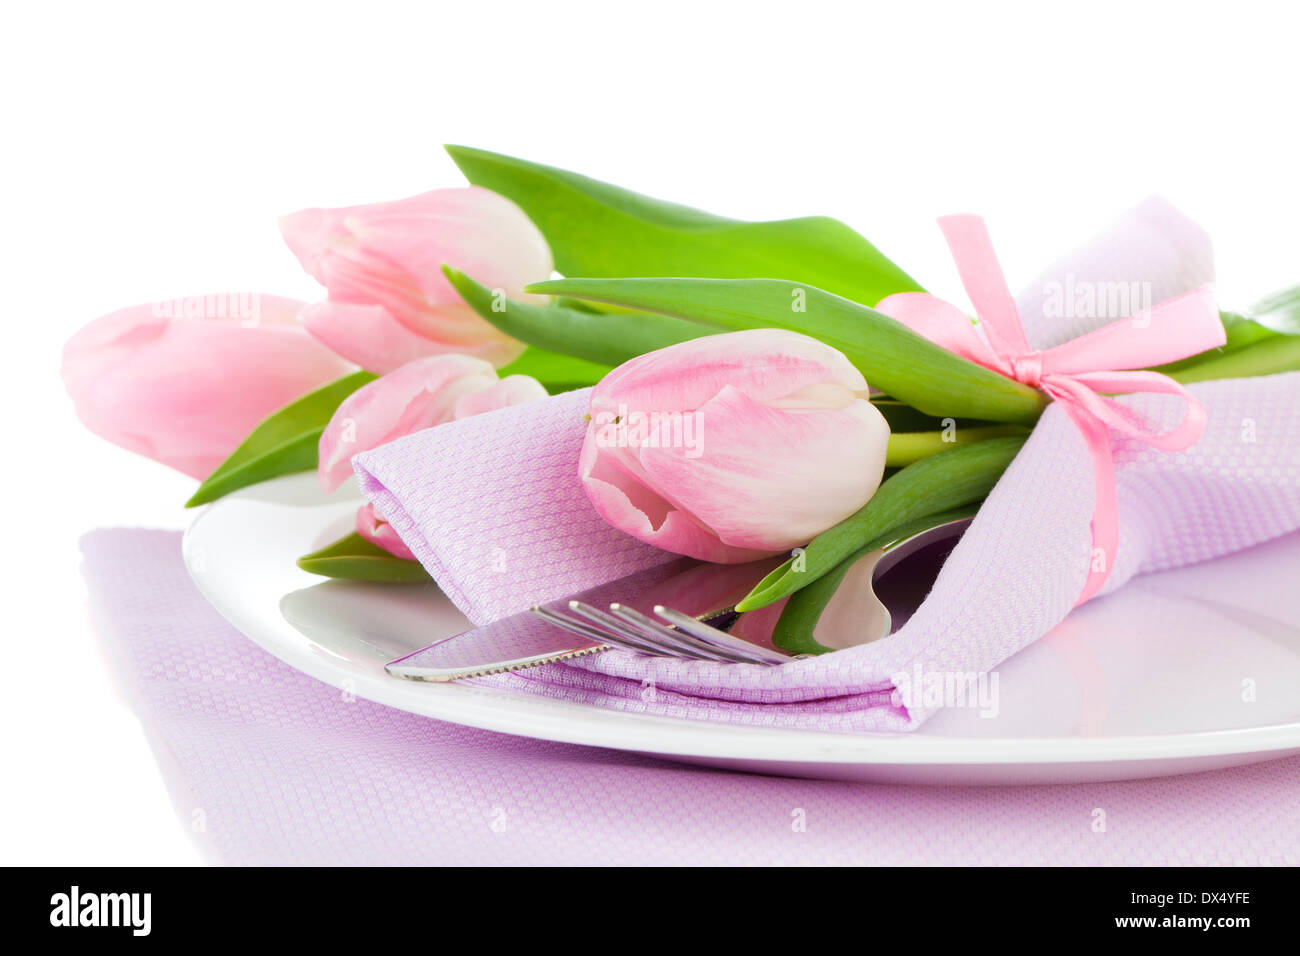 Table Setting Background romantic dinner / table setting with roses tulips and cutlery, on